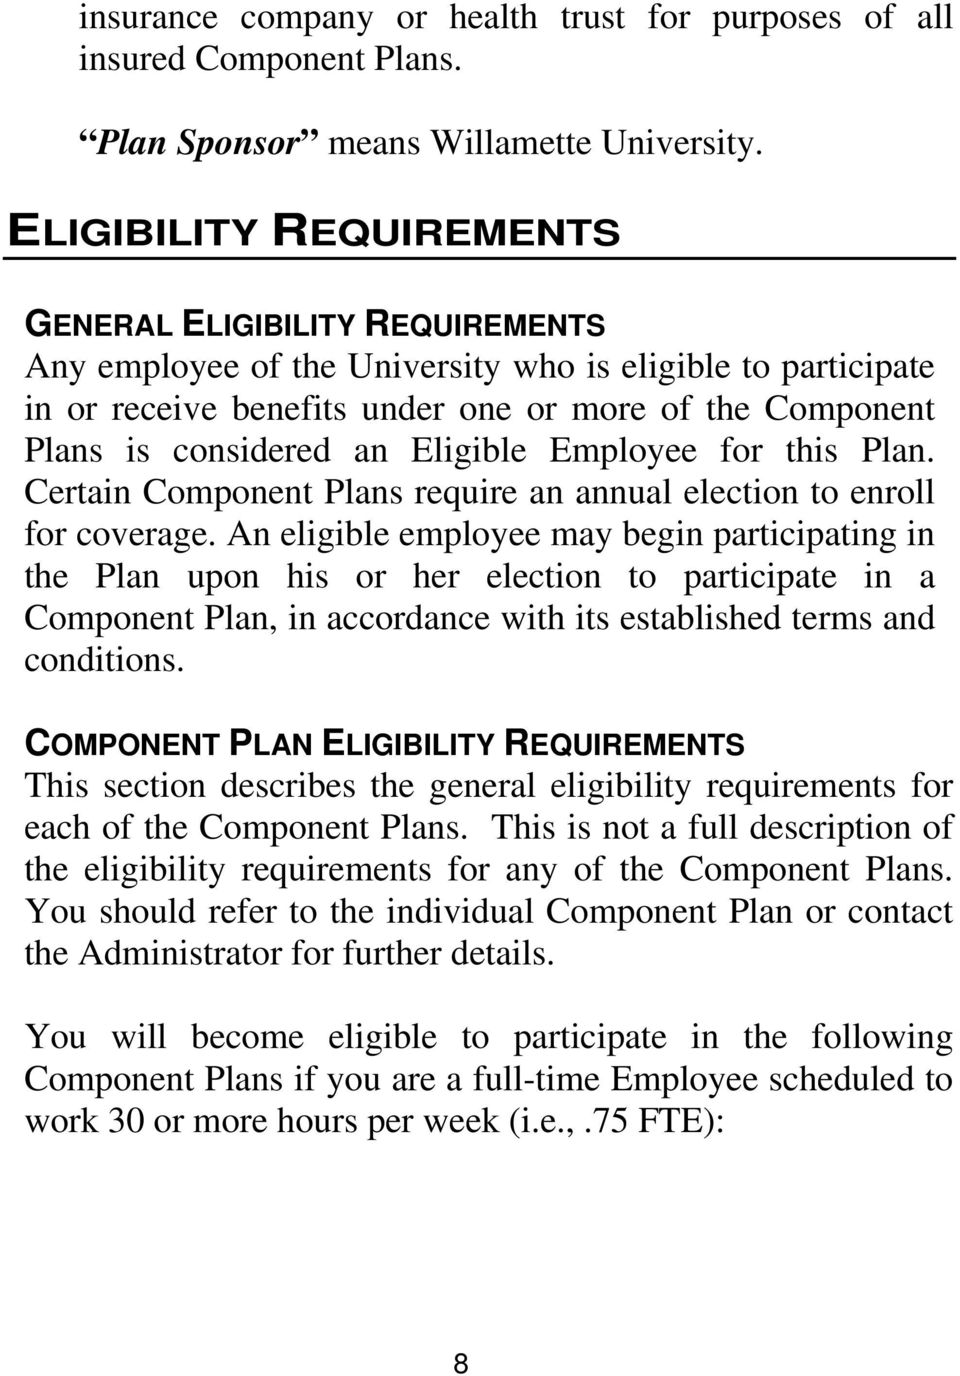 an Eligible Employee for this Plan. Certain Component Plans require an annual election to enroll for coverage.